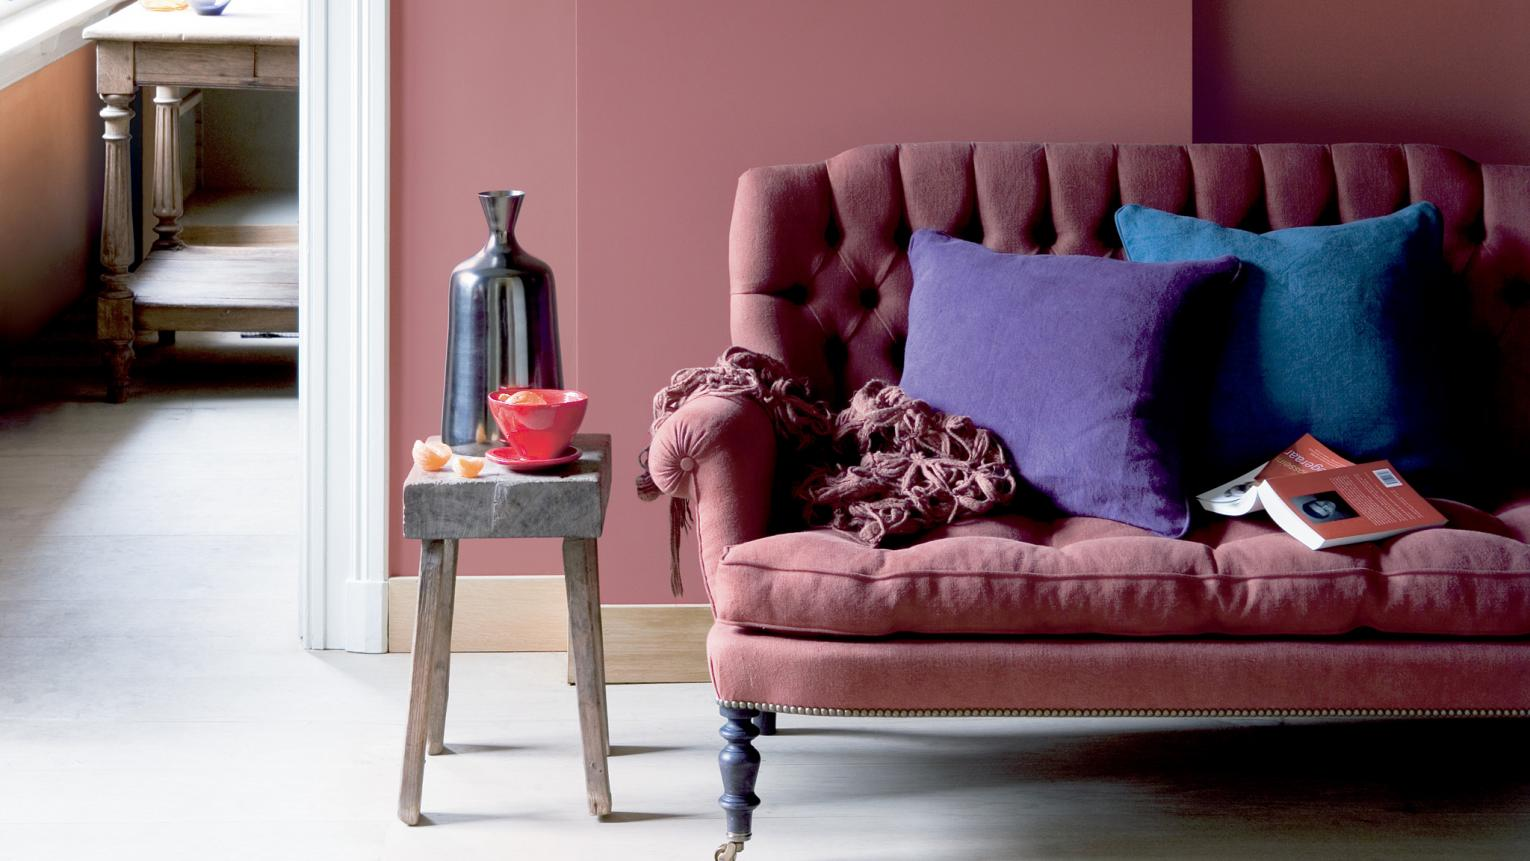 Accessorise a dark pink living room with rich, jewel shades.